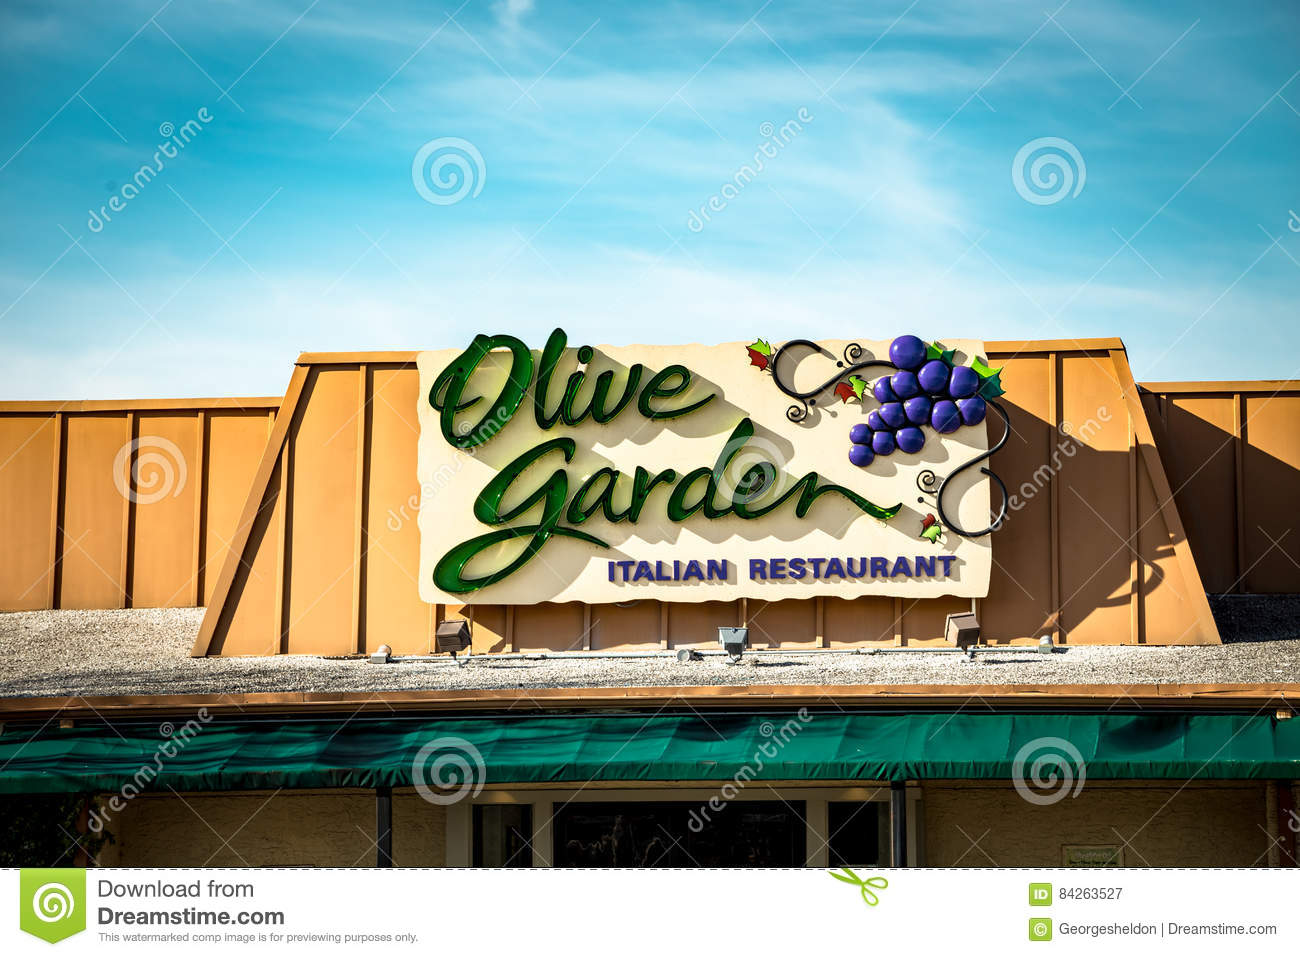 lancaster pa january 15 2017 exterior of olive garden italian kitchen restaurant location olive garden is a chain restaurant that offers casual - Olive Garden Lancaster